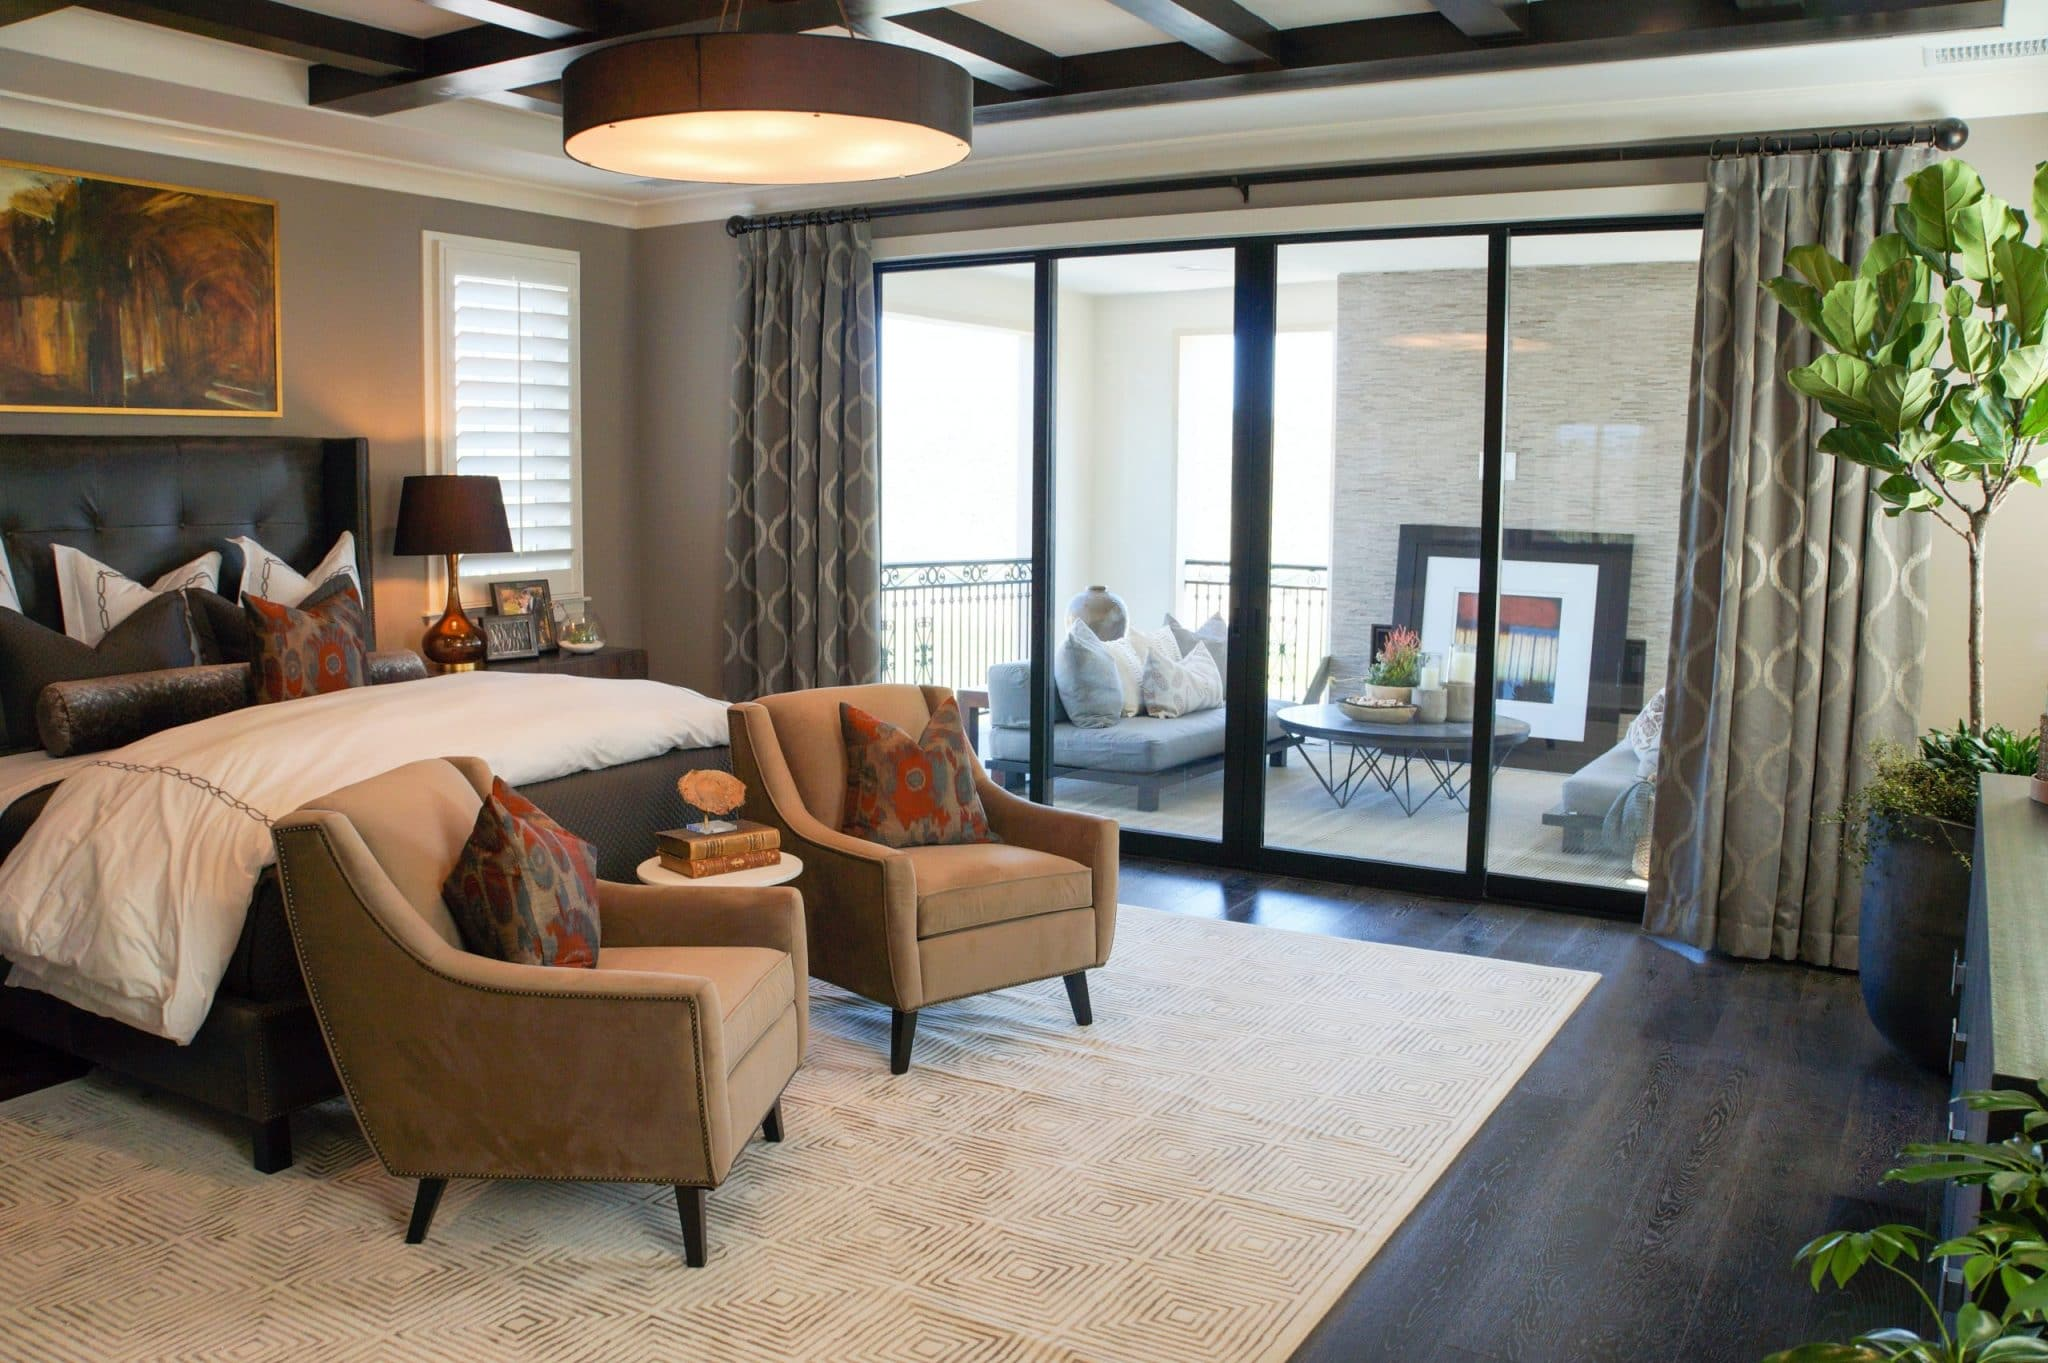 4 Ideas for Designing the Perfect Master Bedroom for Your Custom Home